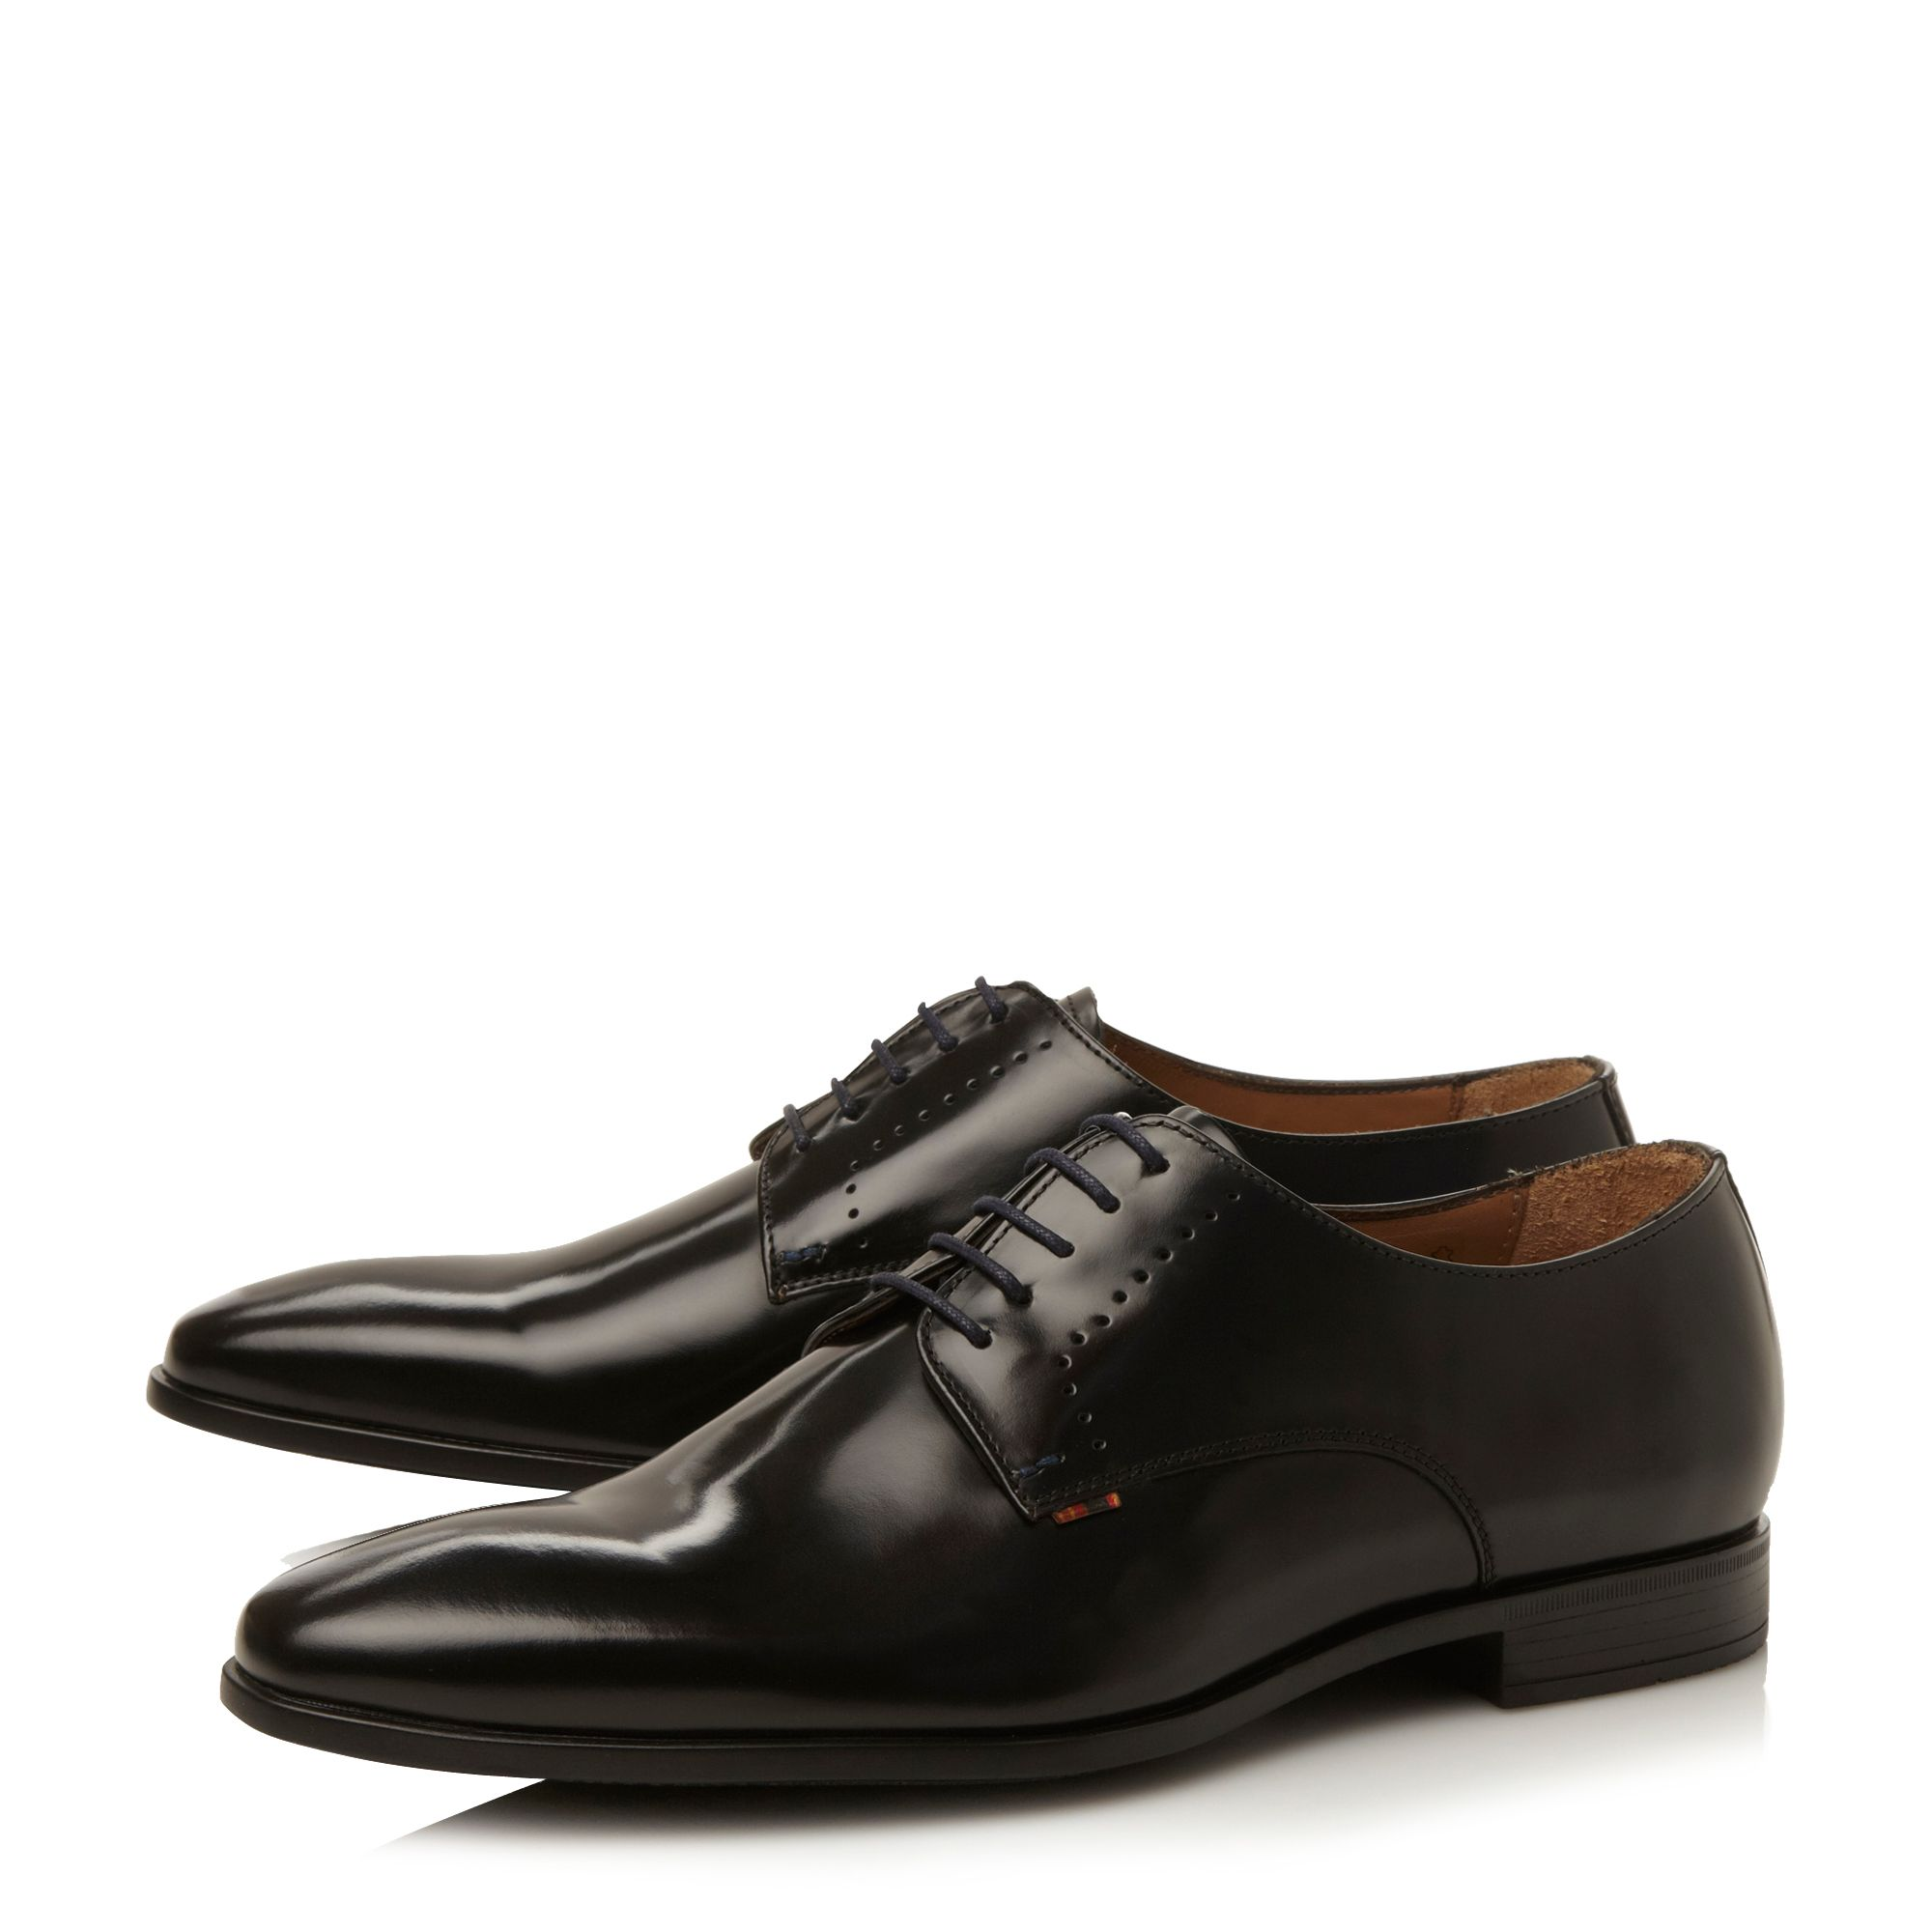 Moore plain toe gibson shoes